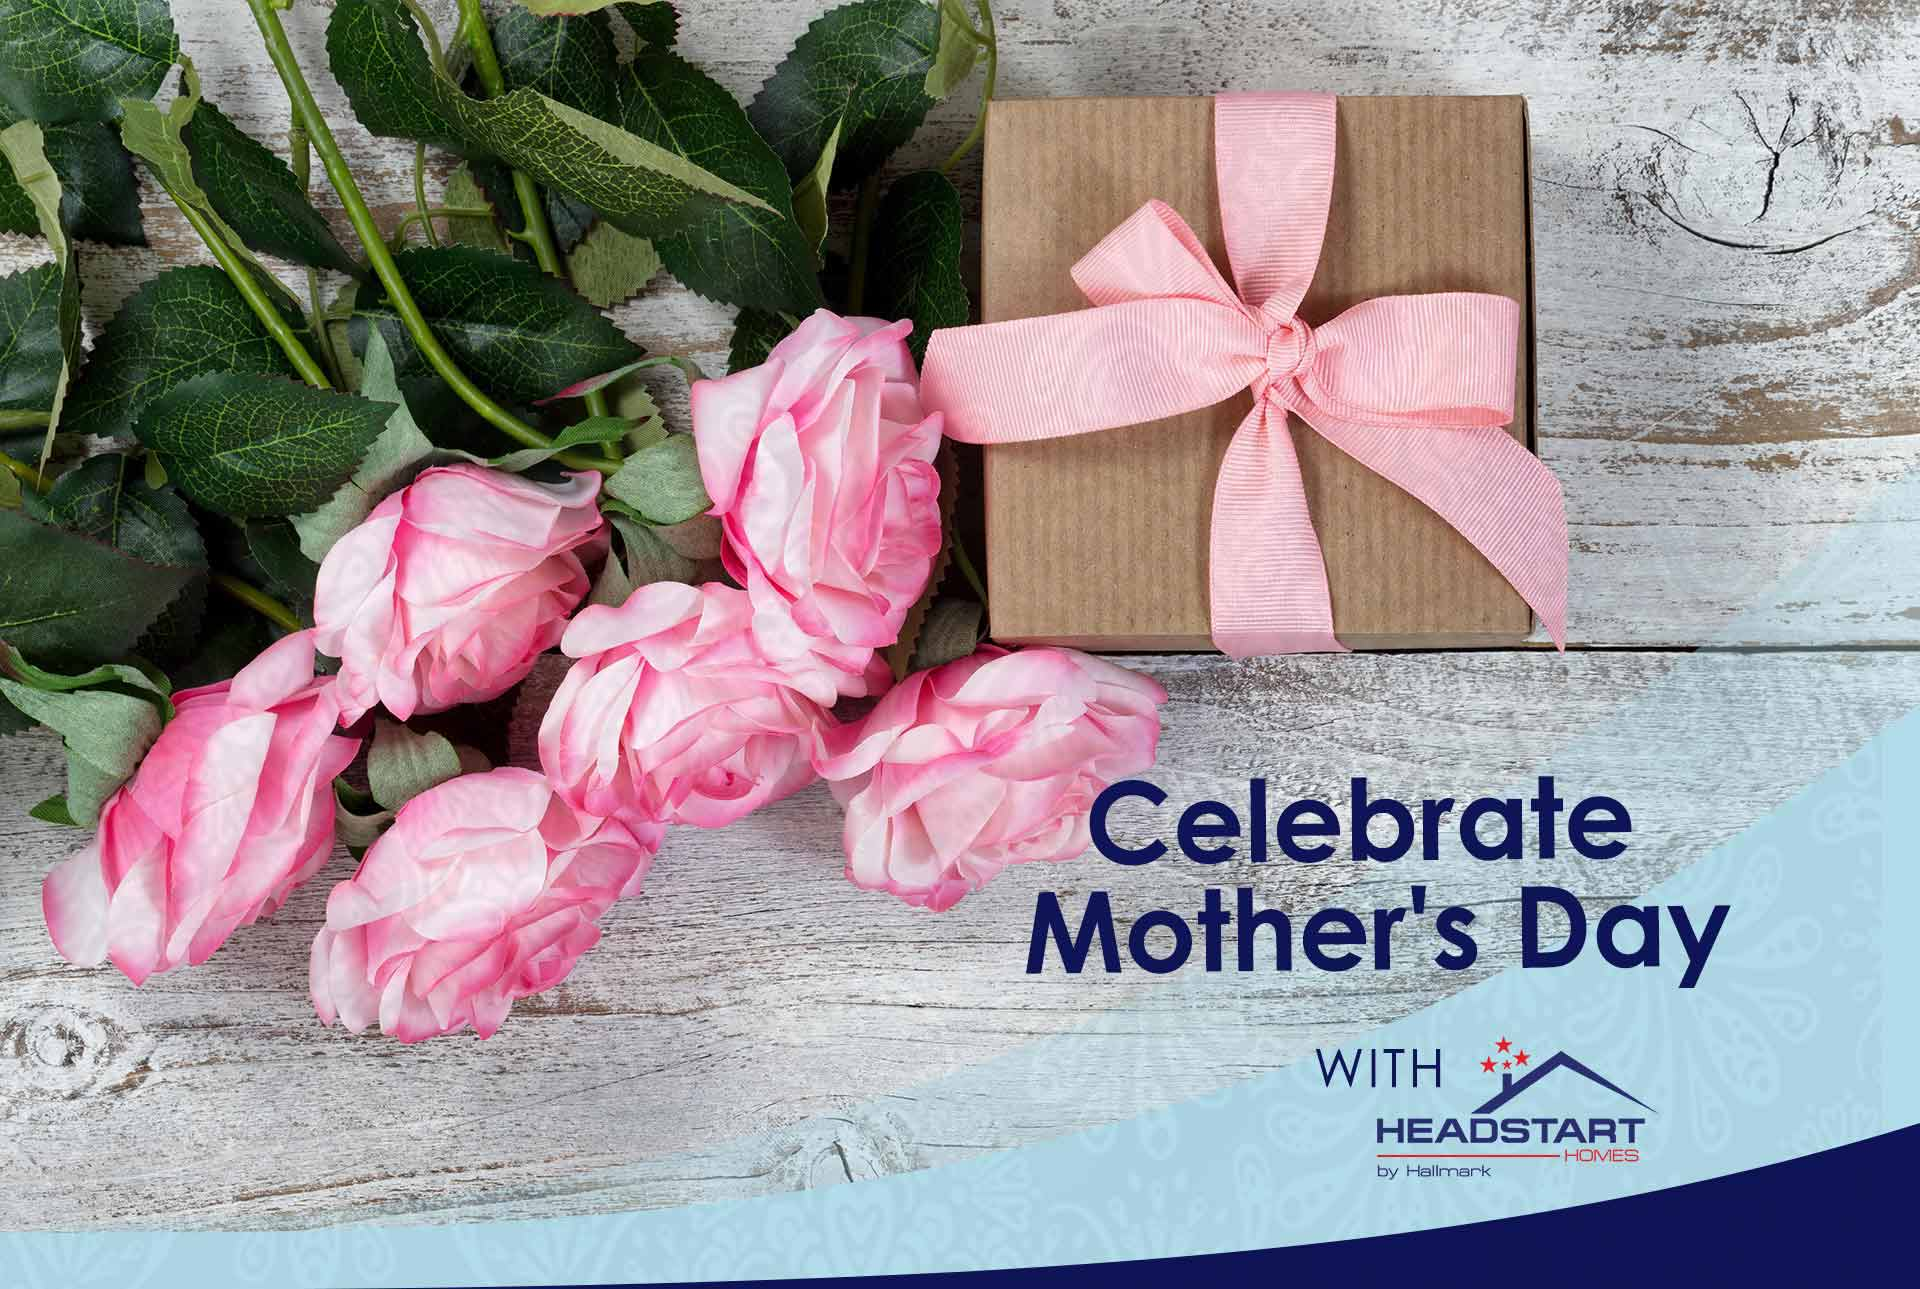 image1 1 - headstart-mother's day